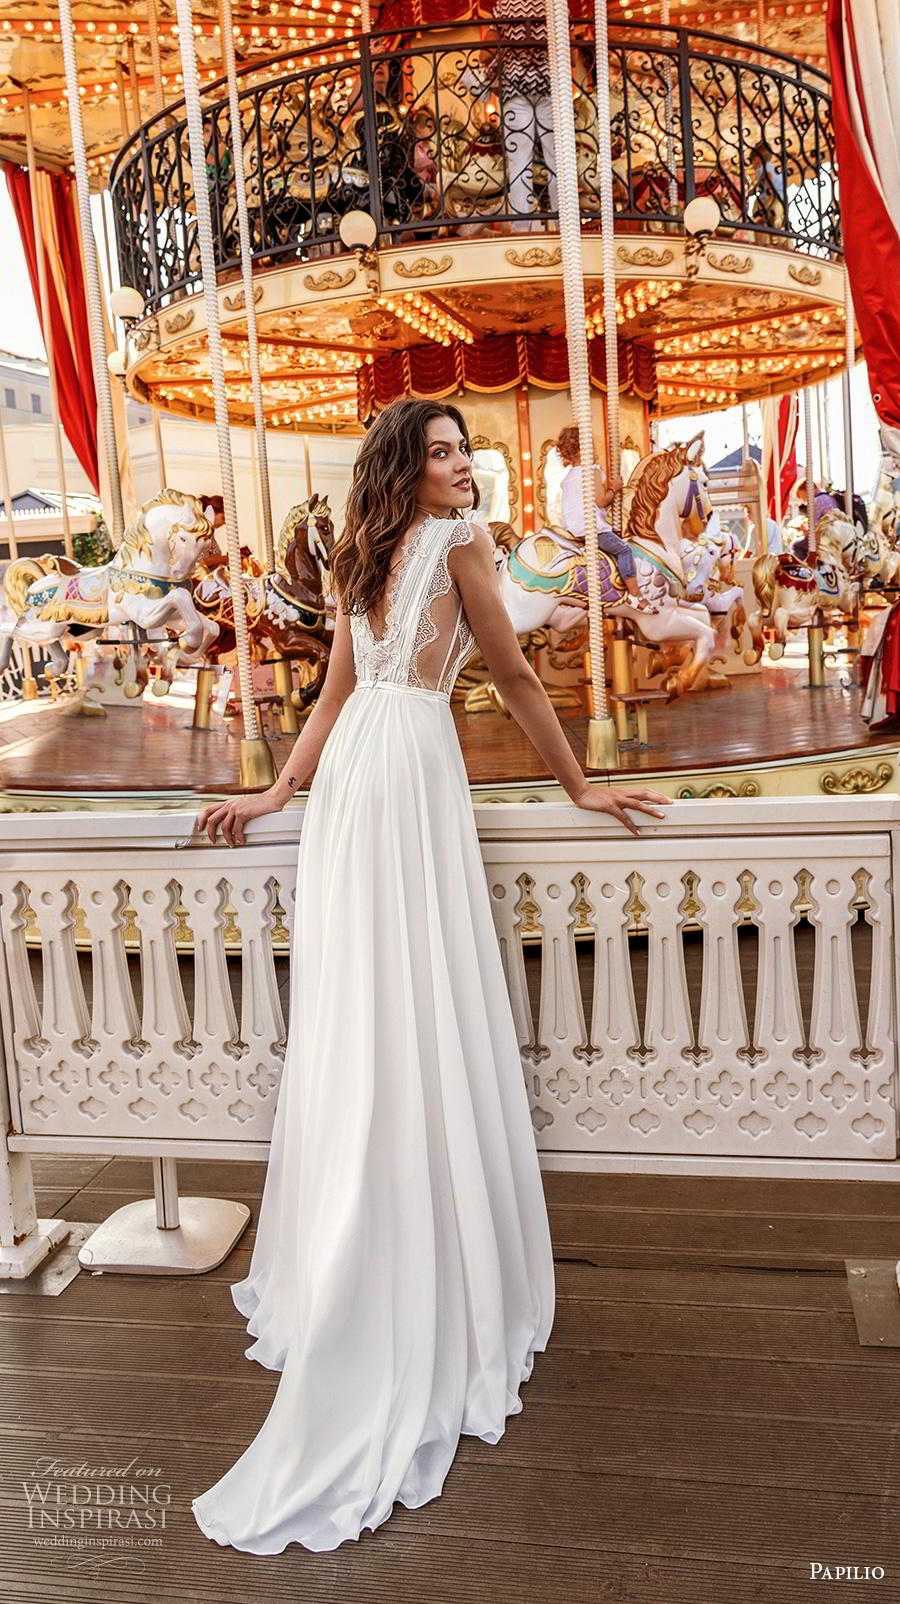 Papilio Light 2019 Robes De Mariée